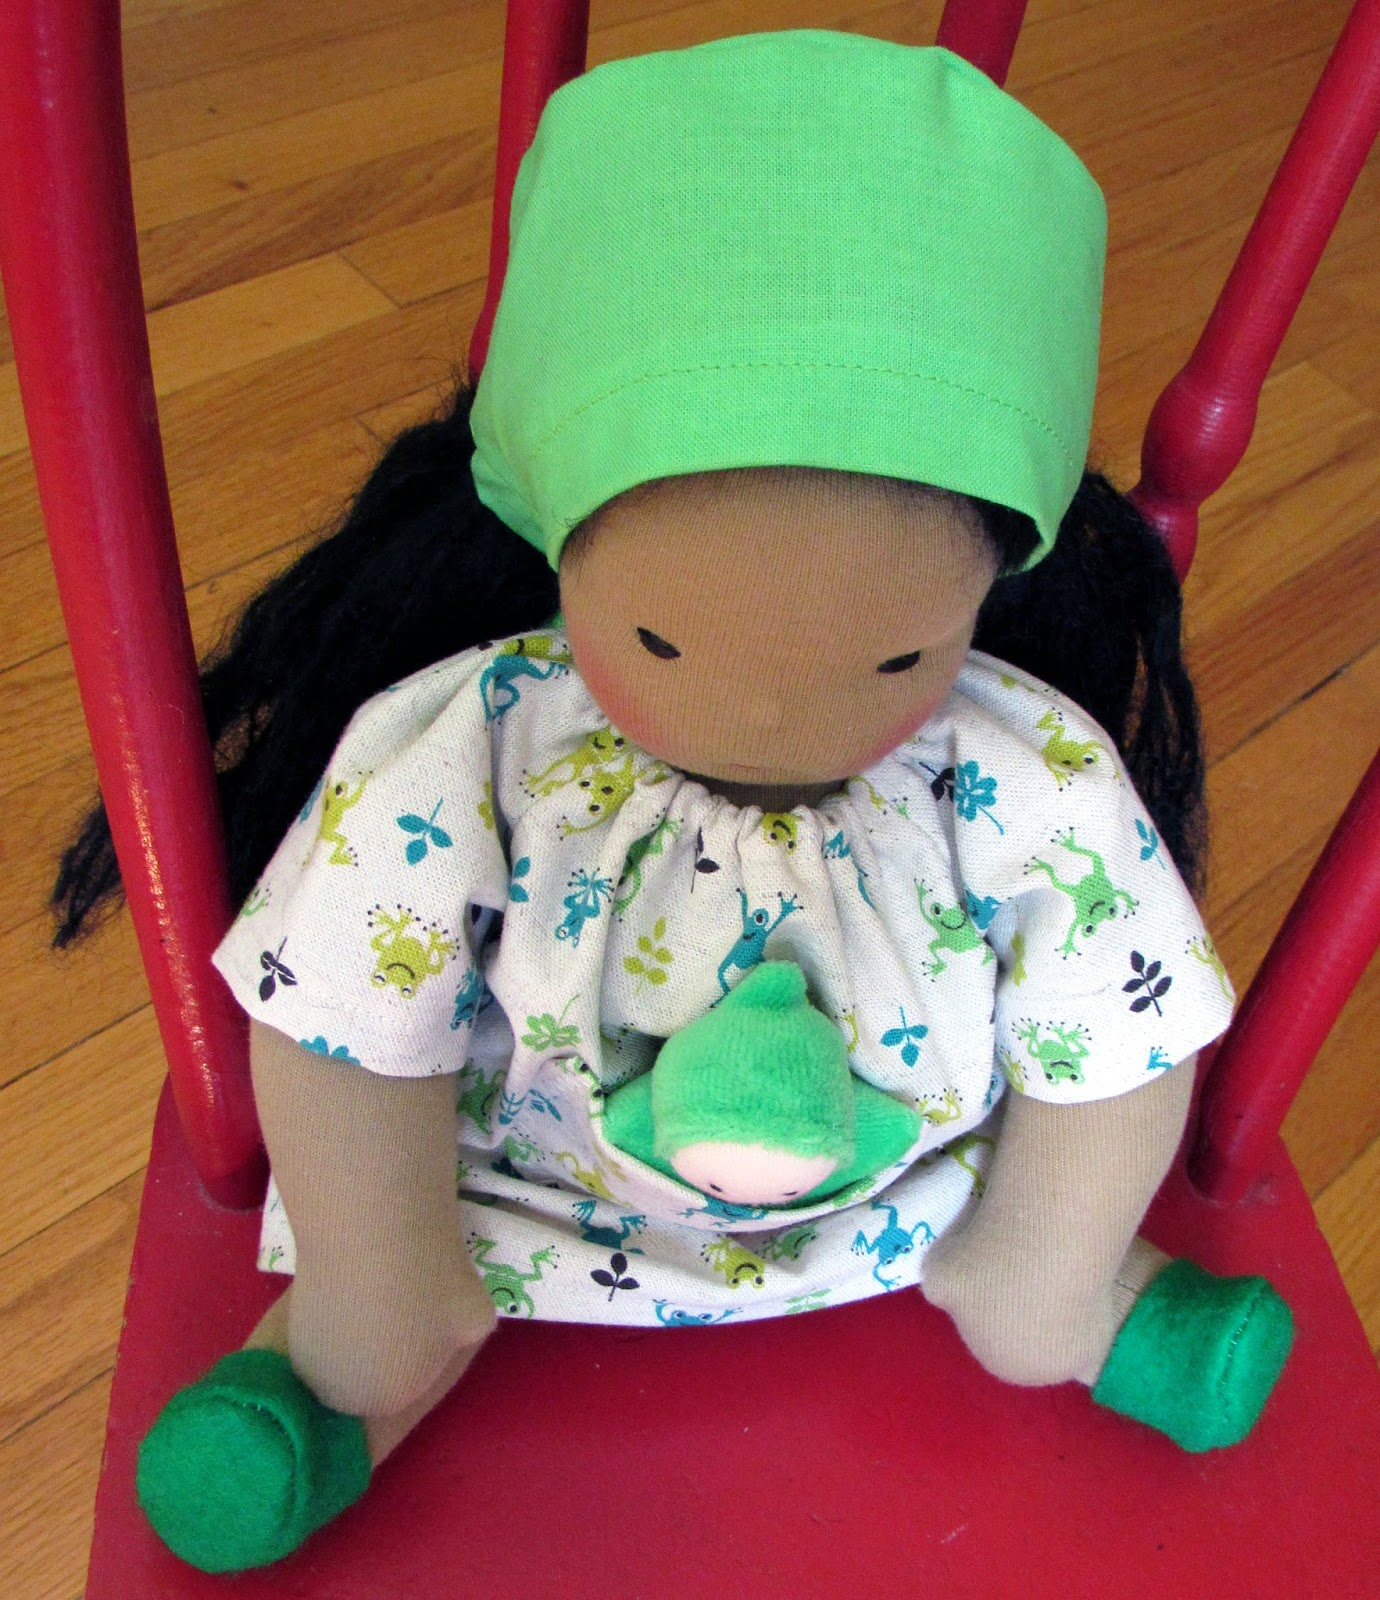 https://www.etsy.com/listing/191208938/waldorf-doll-froggy-friends-12-inch-doll?ref=shop_home_active_1